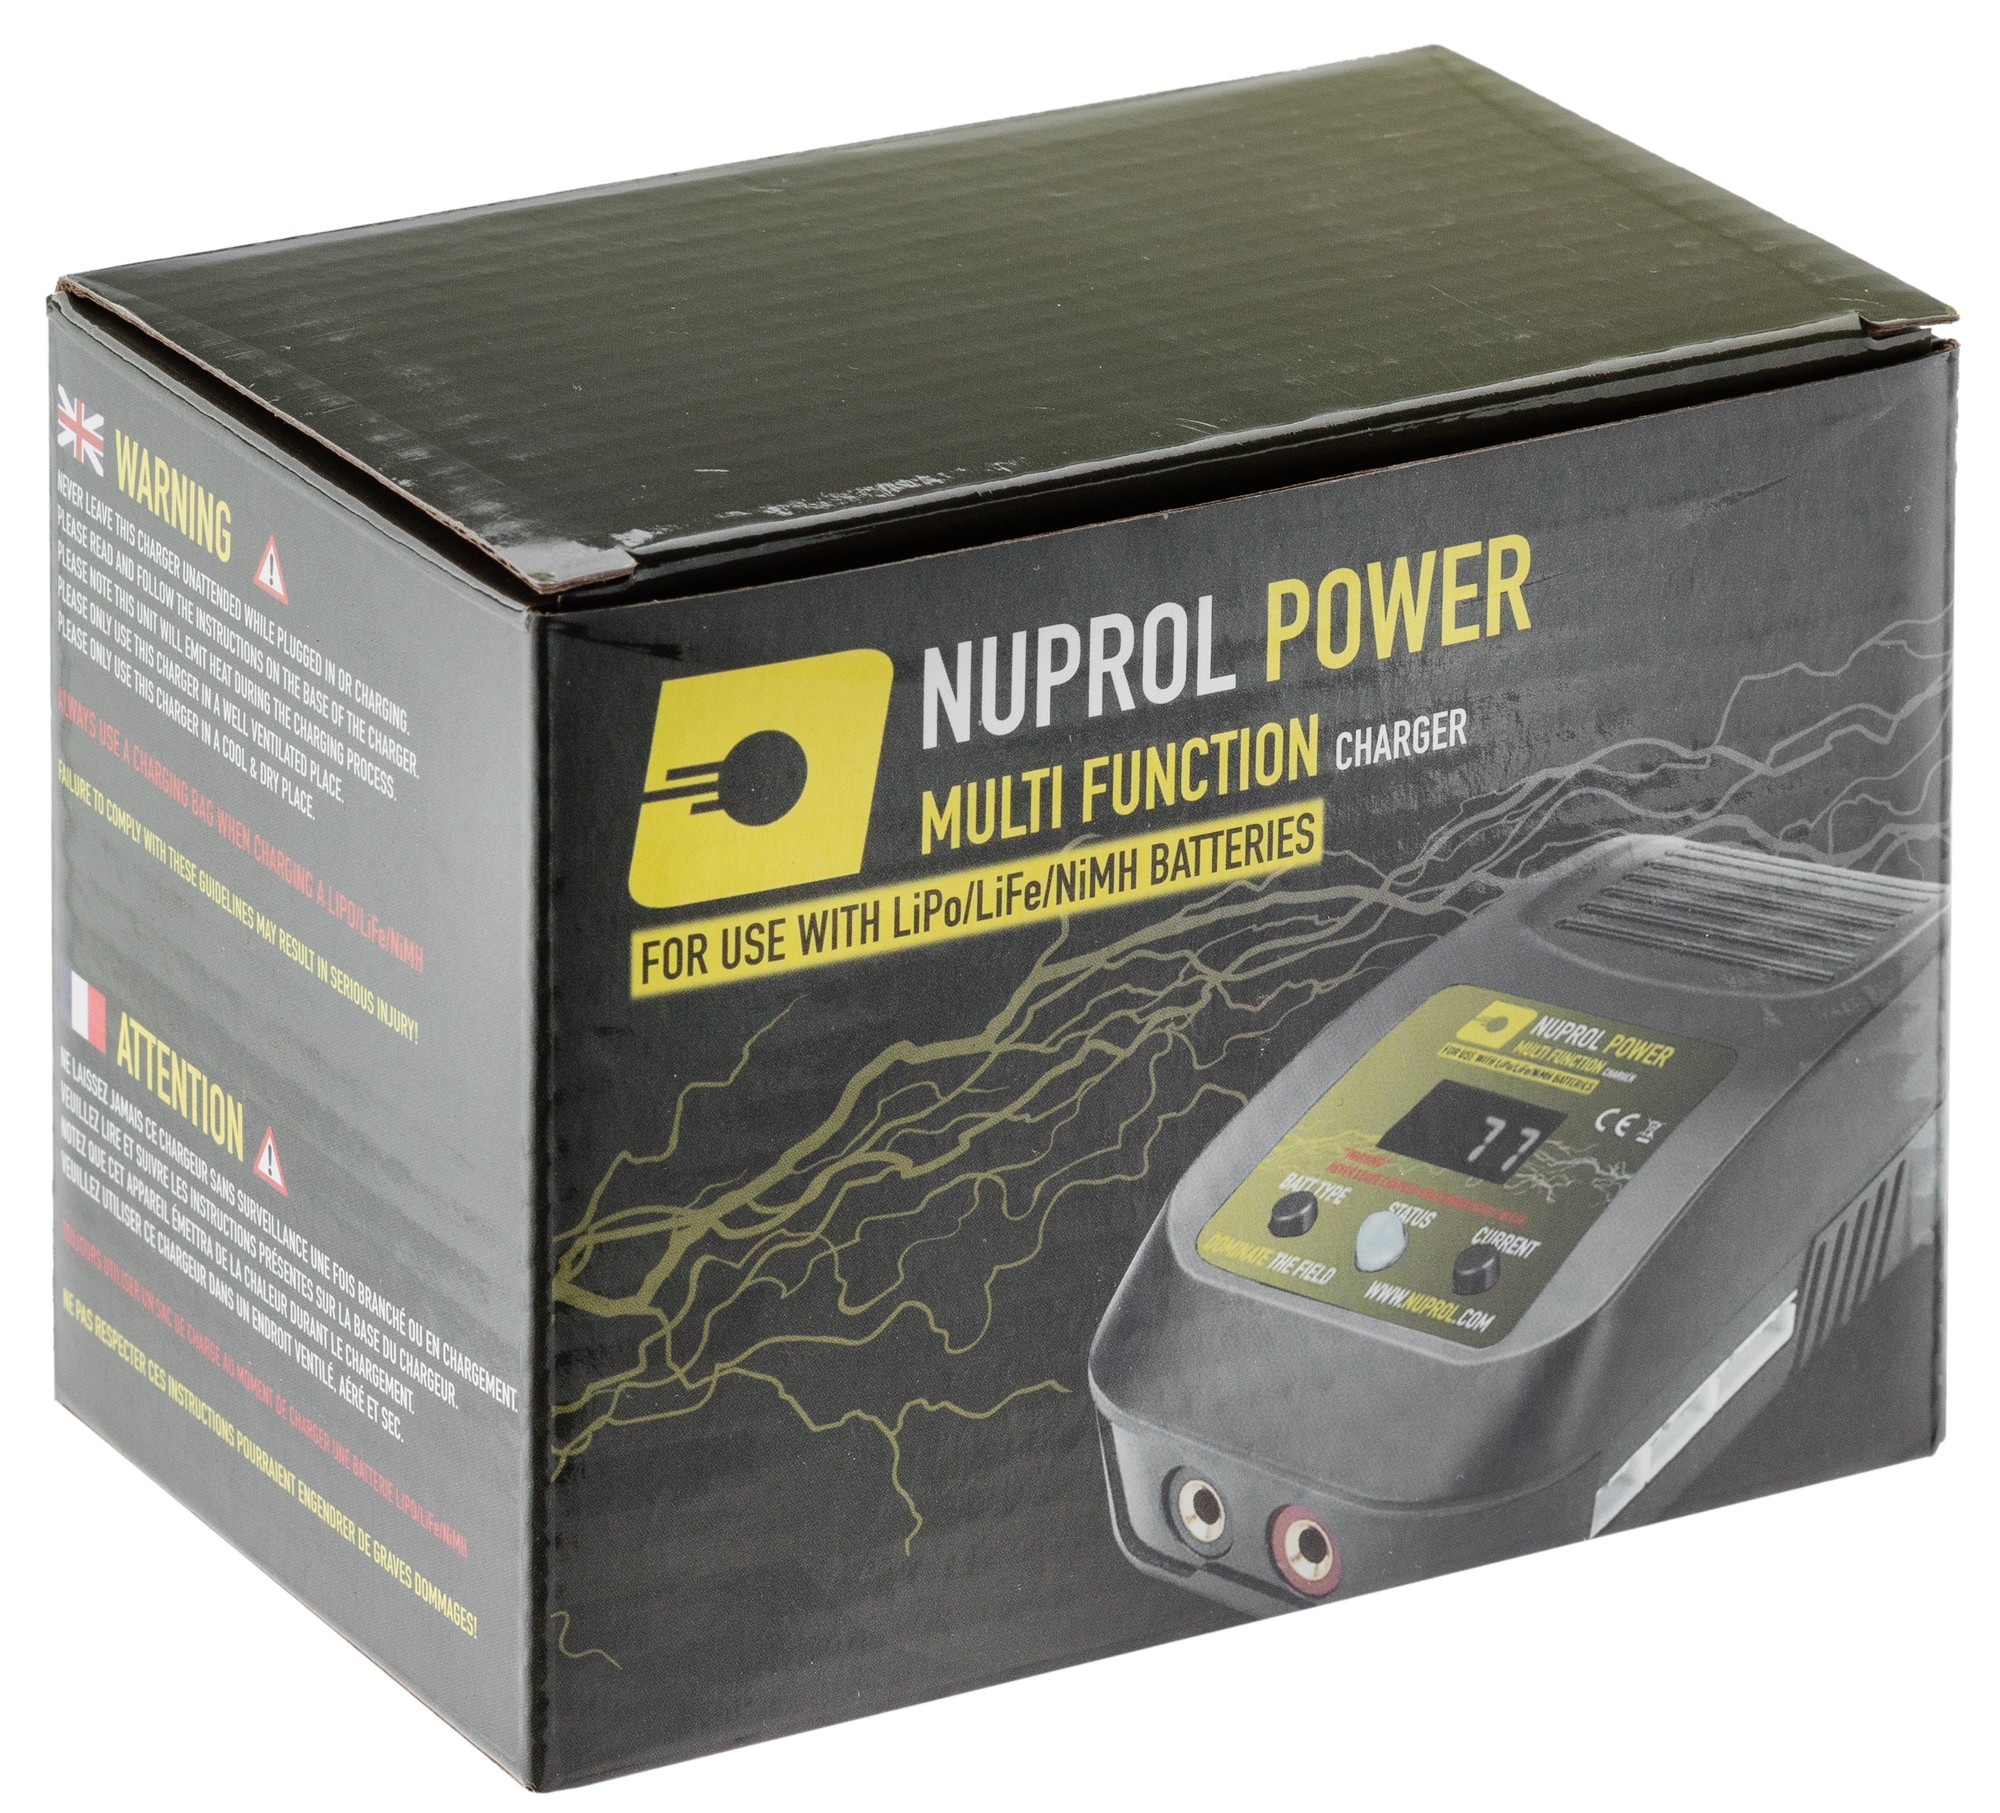 A69838-3 Lipo / Life / NiMh / NiCd Multi Function Charger - A69838